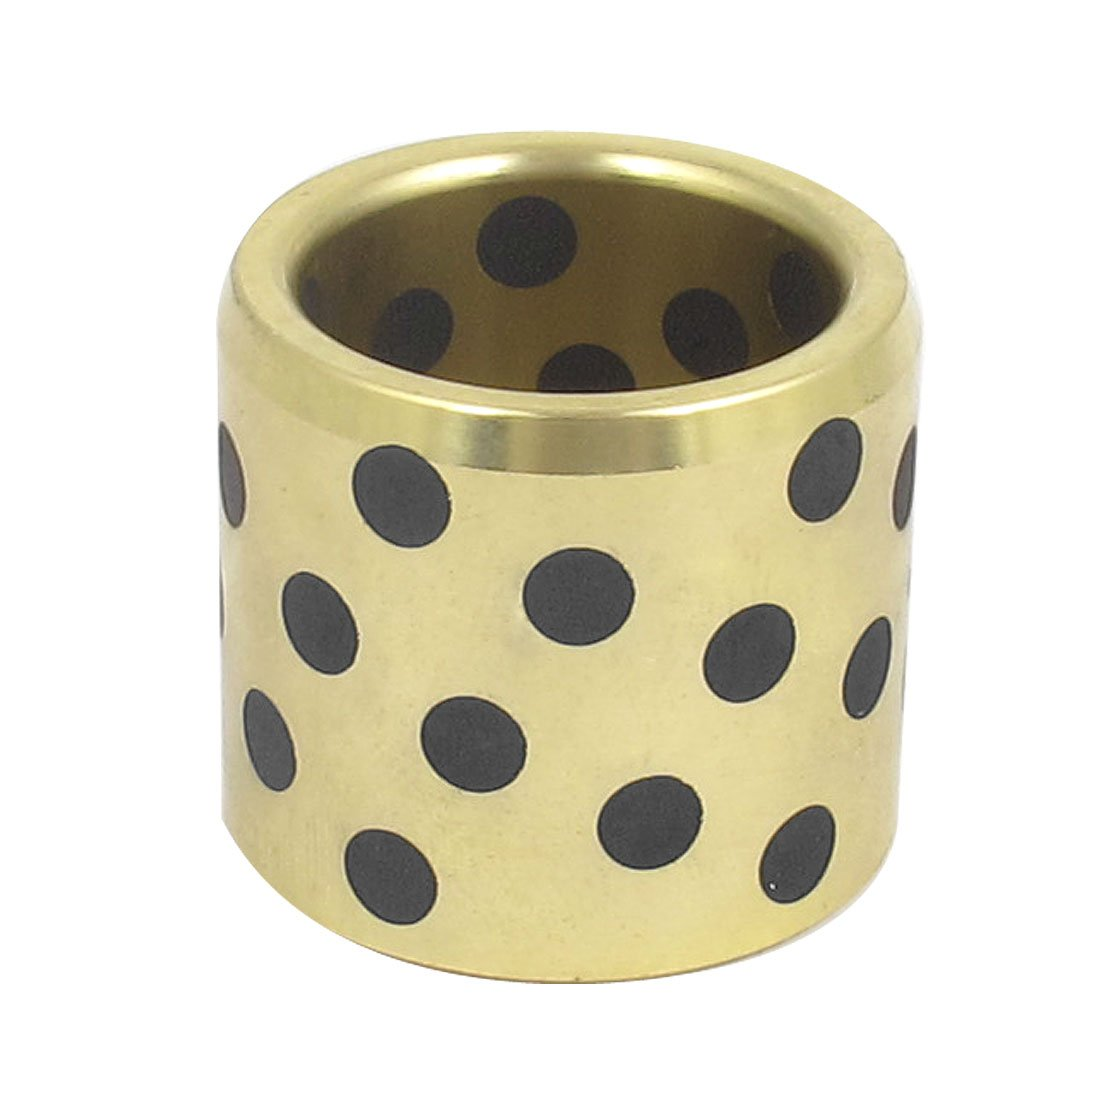 sourcingmap Oilless Graphite Lubricating Brass Bearing Bushing Sleeve 25mmx33x30mm US-SA-AJD-124436